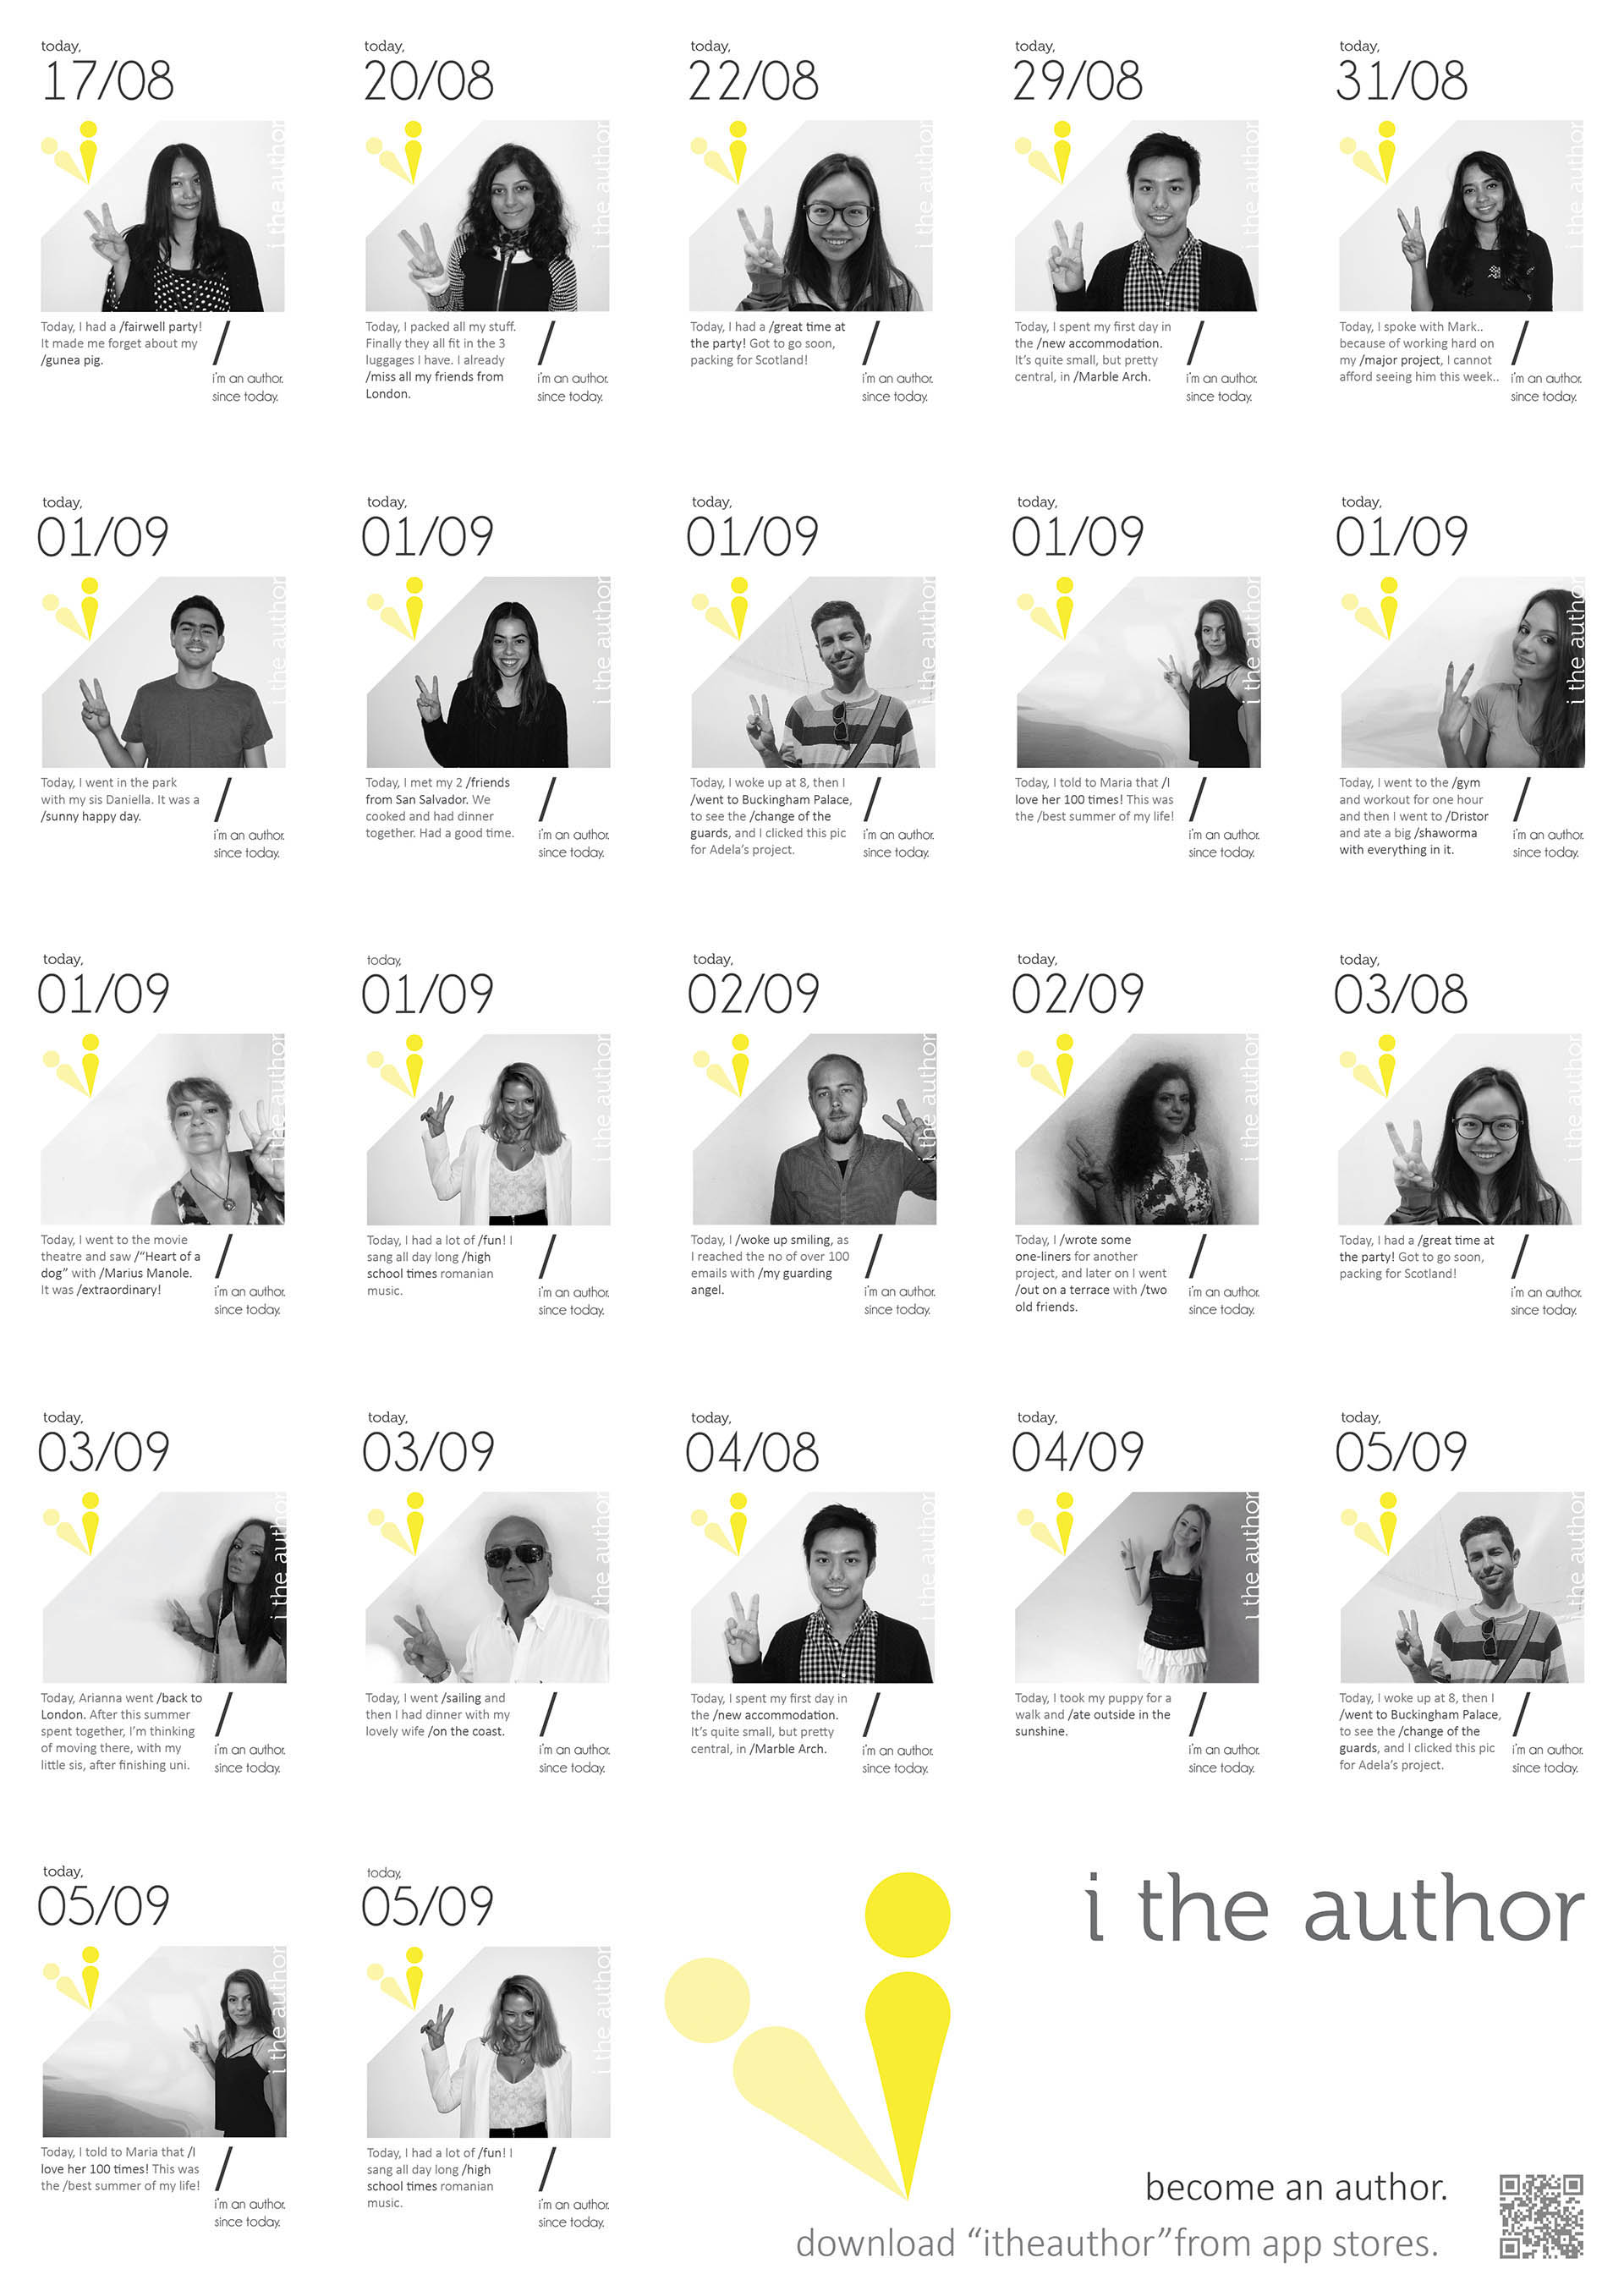 i the author, launch poster campaign